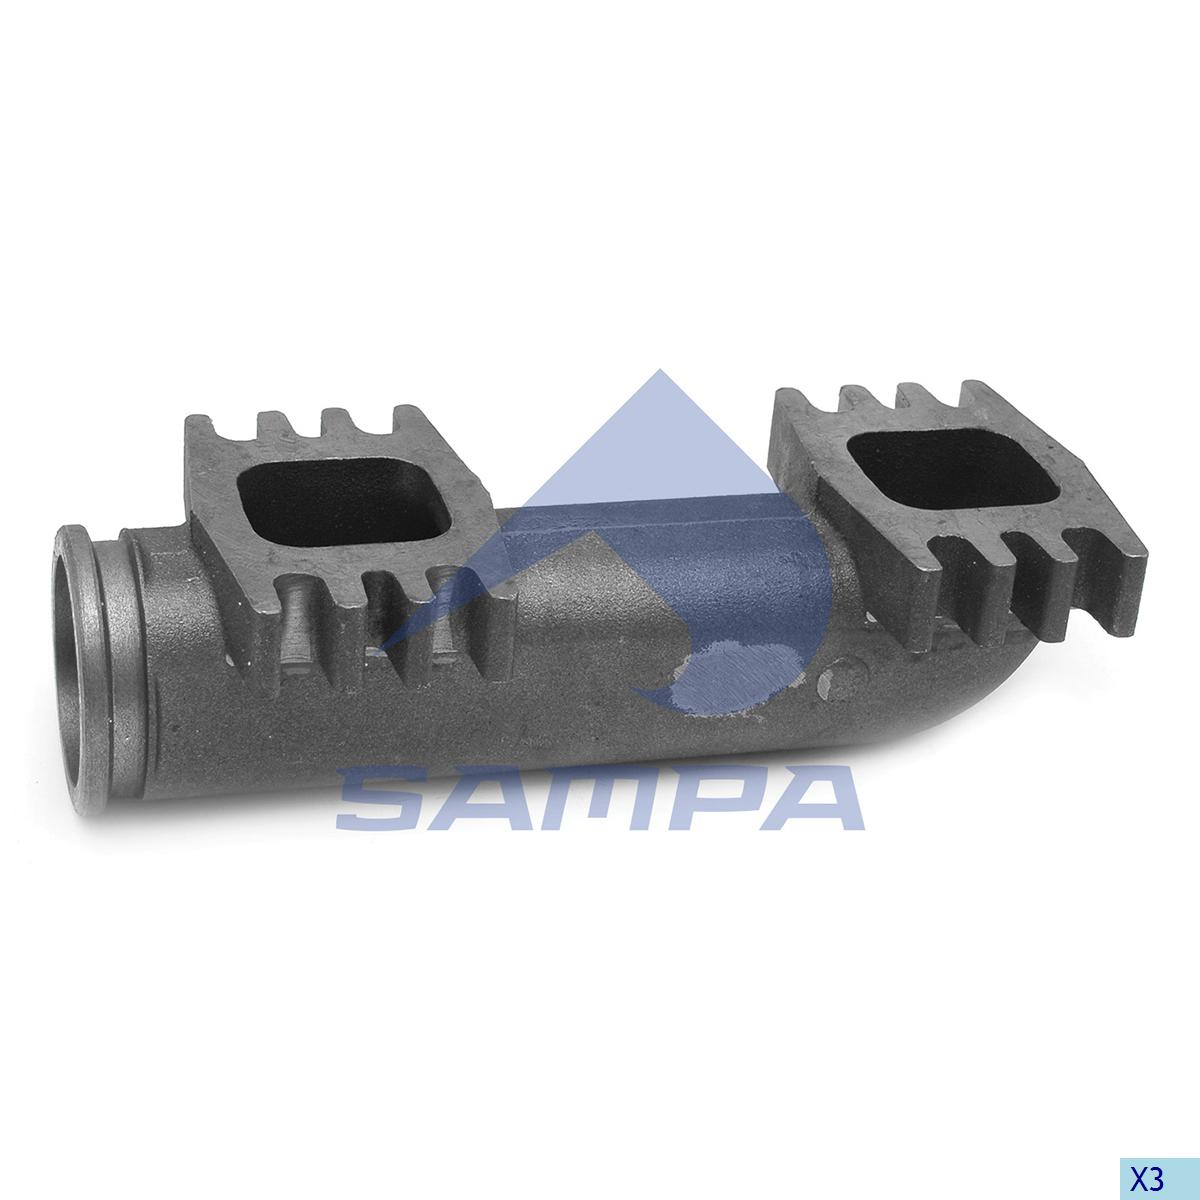 Exhaust Manifold, Iveco, Engine